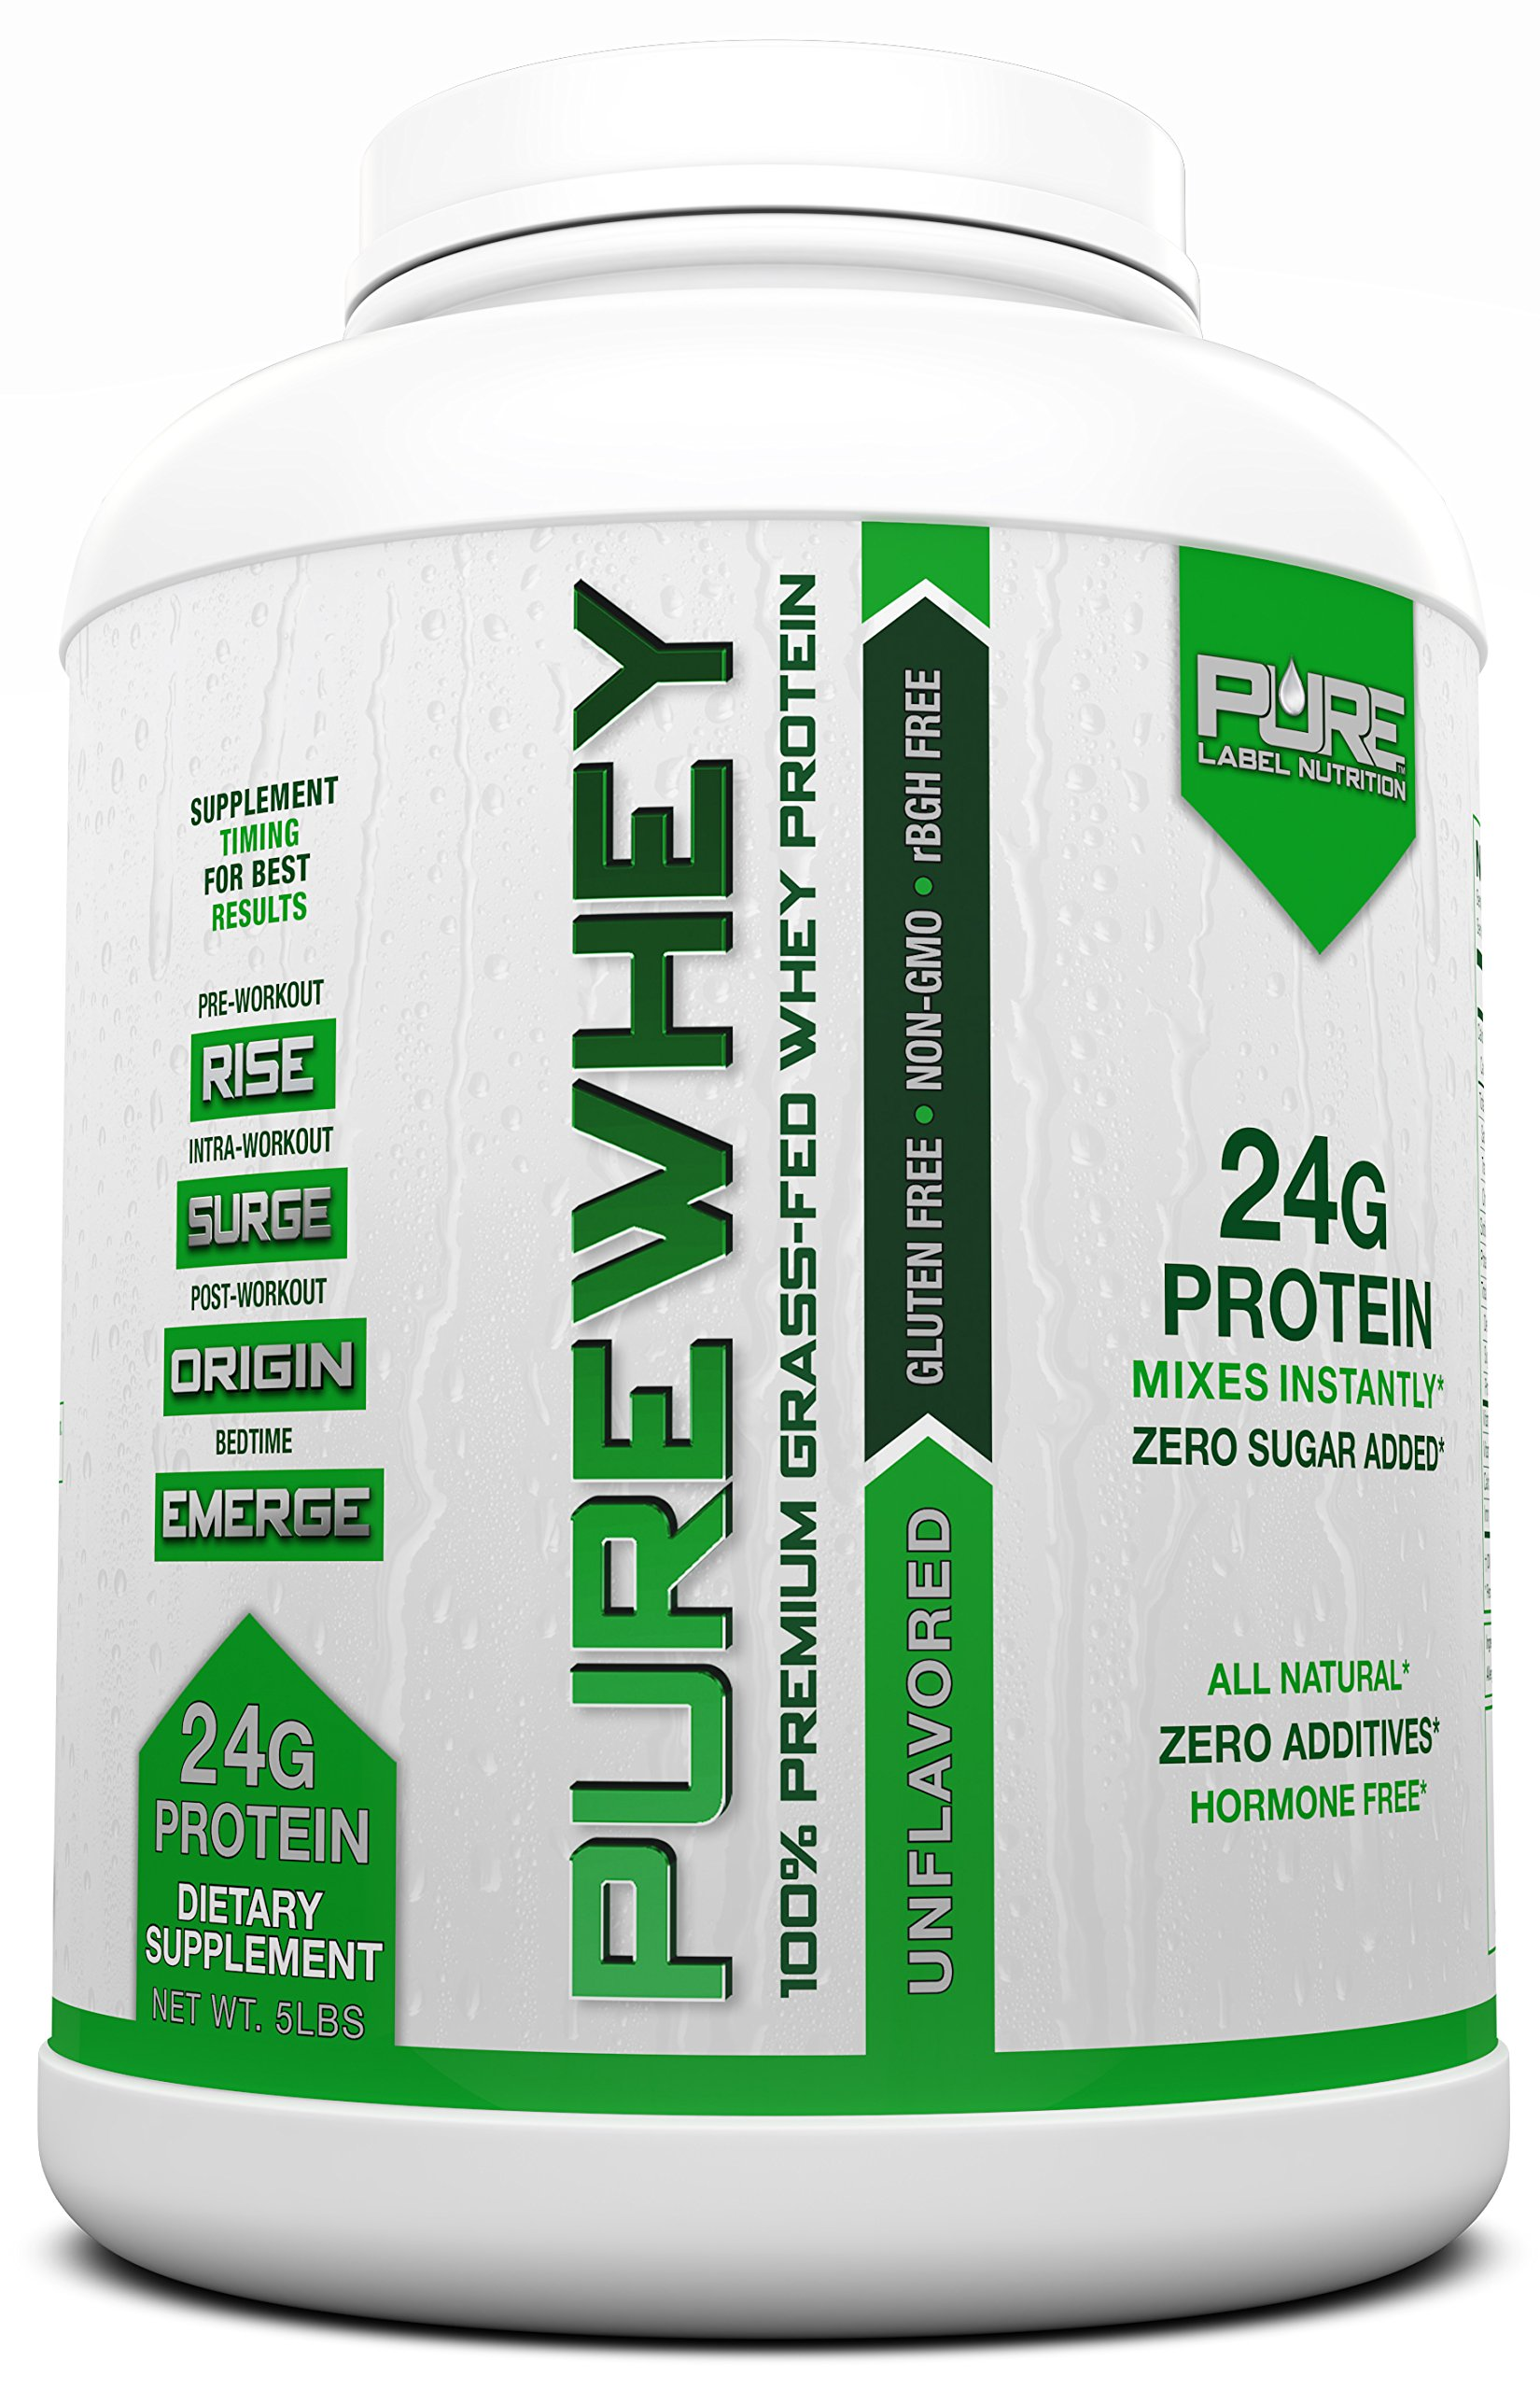 Grass Fed Whey Protein   5lb + Unflavored Whey from Grass Fed California Cows   100% Natural Whey w/ No Sweeteners or Added Sugars   rBHG Free + GMO-Free + Gluten Free + Preservative Free   PURE Whey